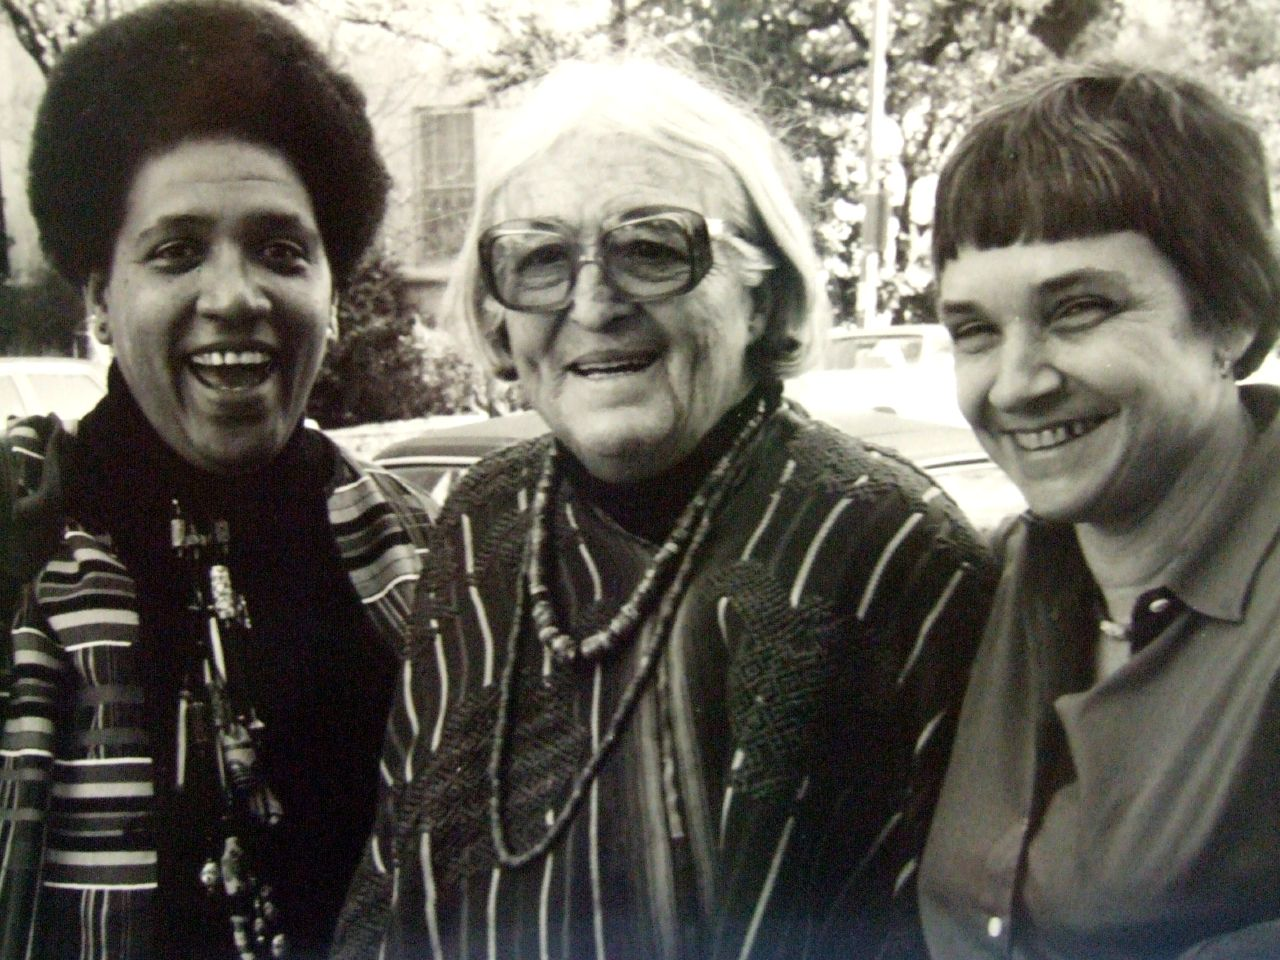 Audre Lorde (left), Meridel Lesueur (center), and Adrienne Rich (right) in 1980, leading a writing workshop together in Austin, Texas.